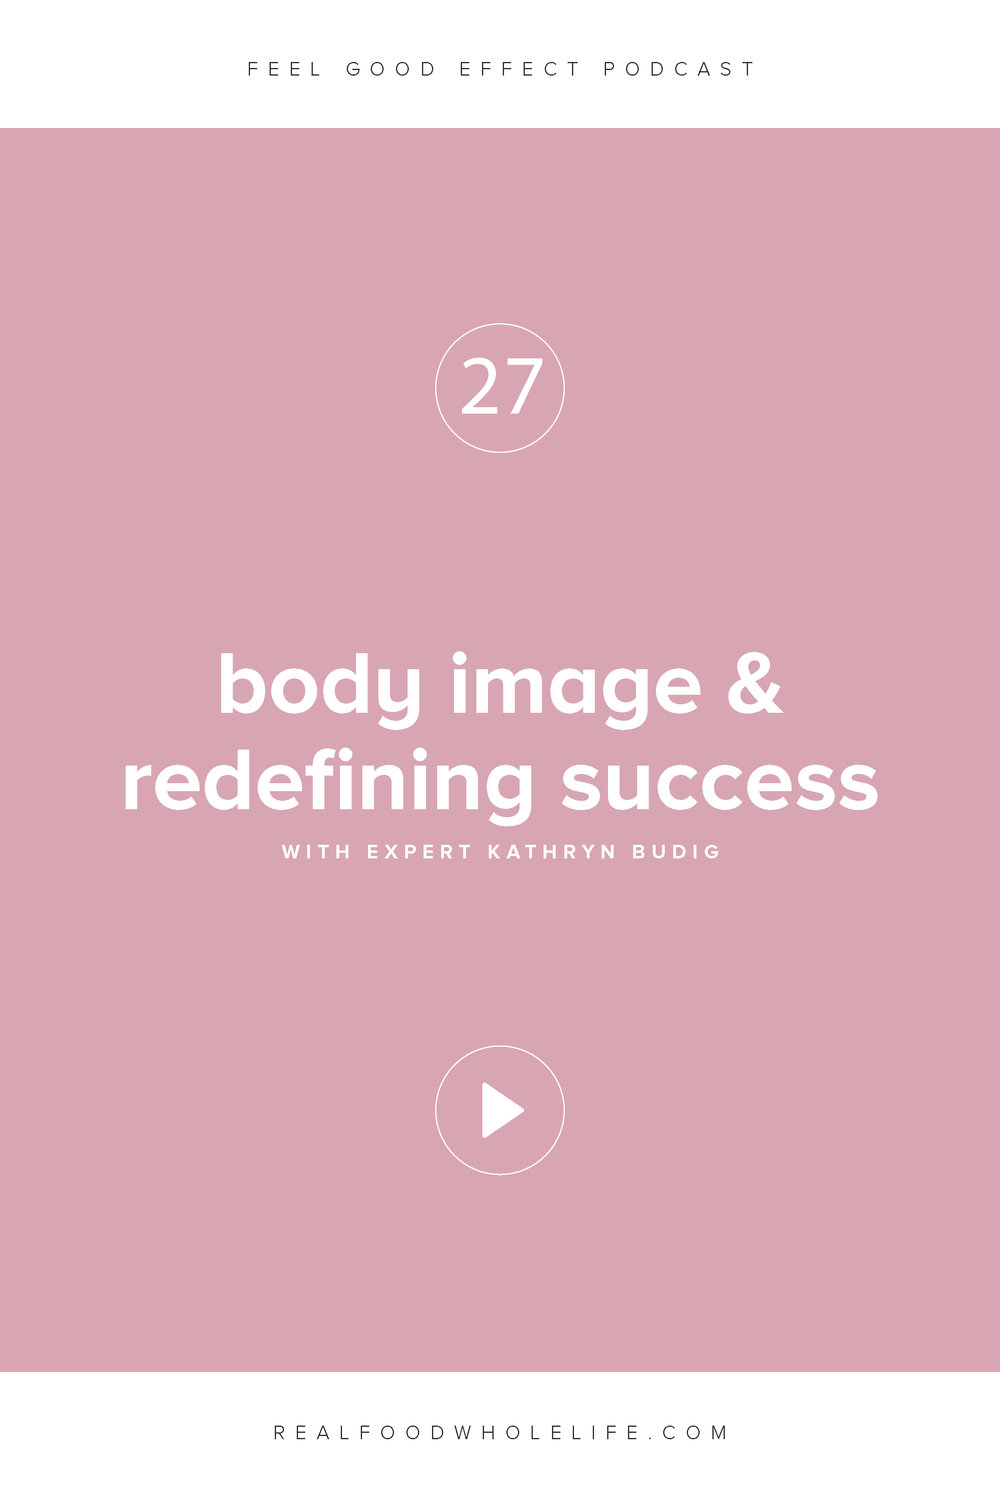 Kathryn Budig on Body Image & Redefining Success